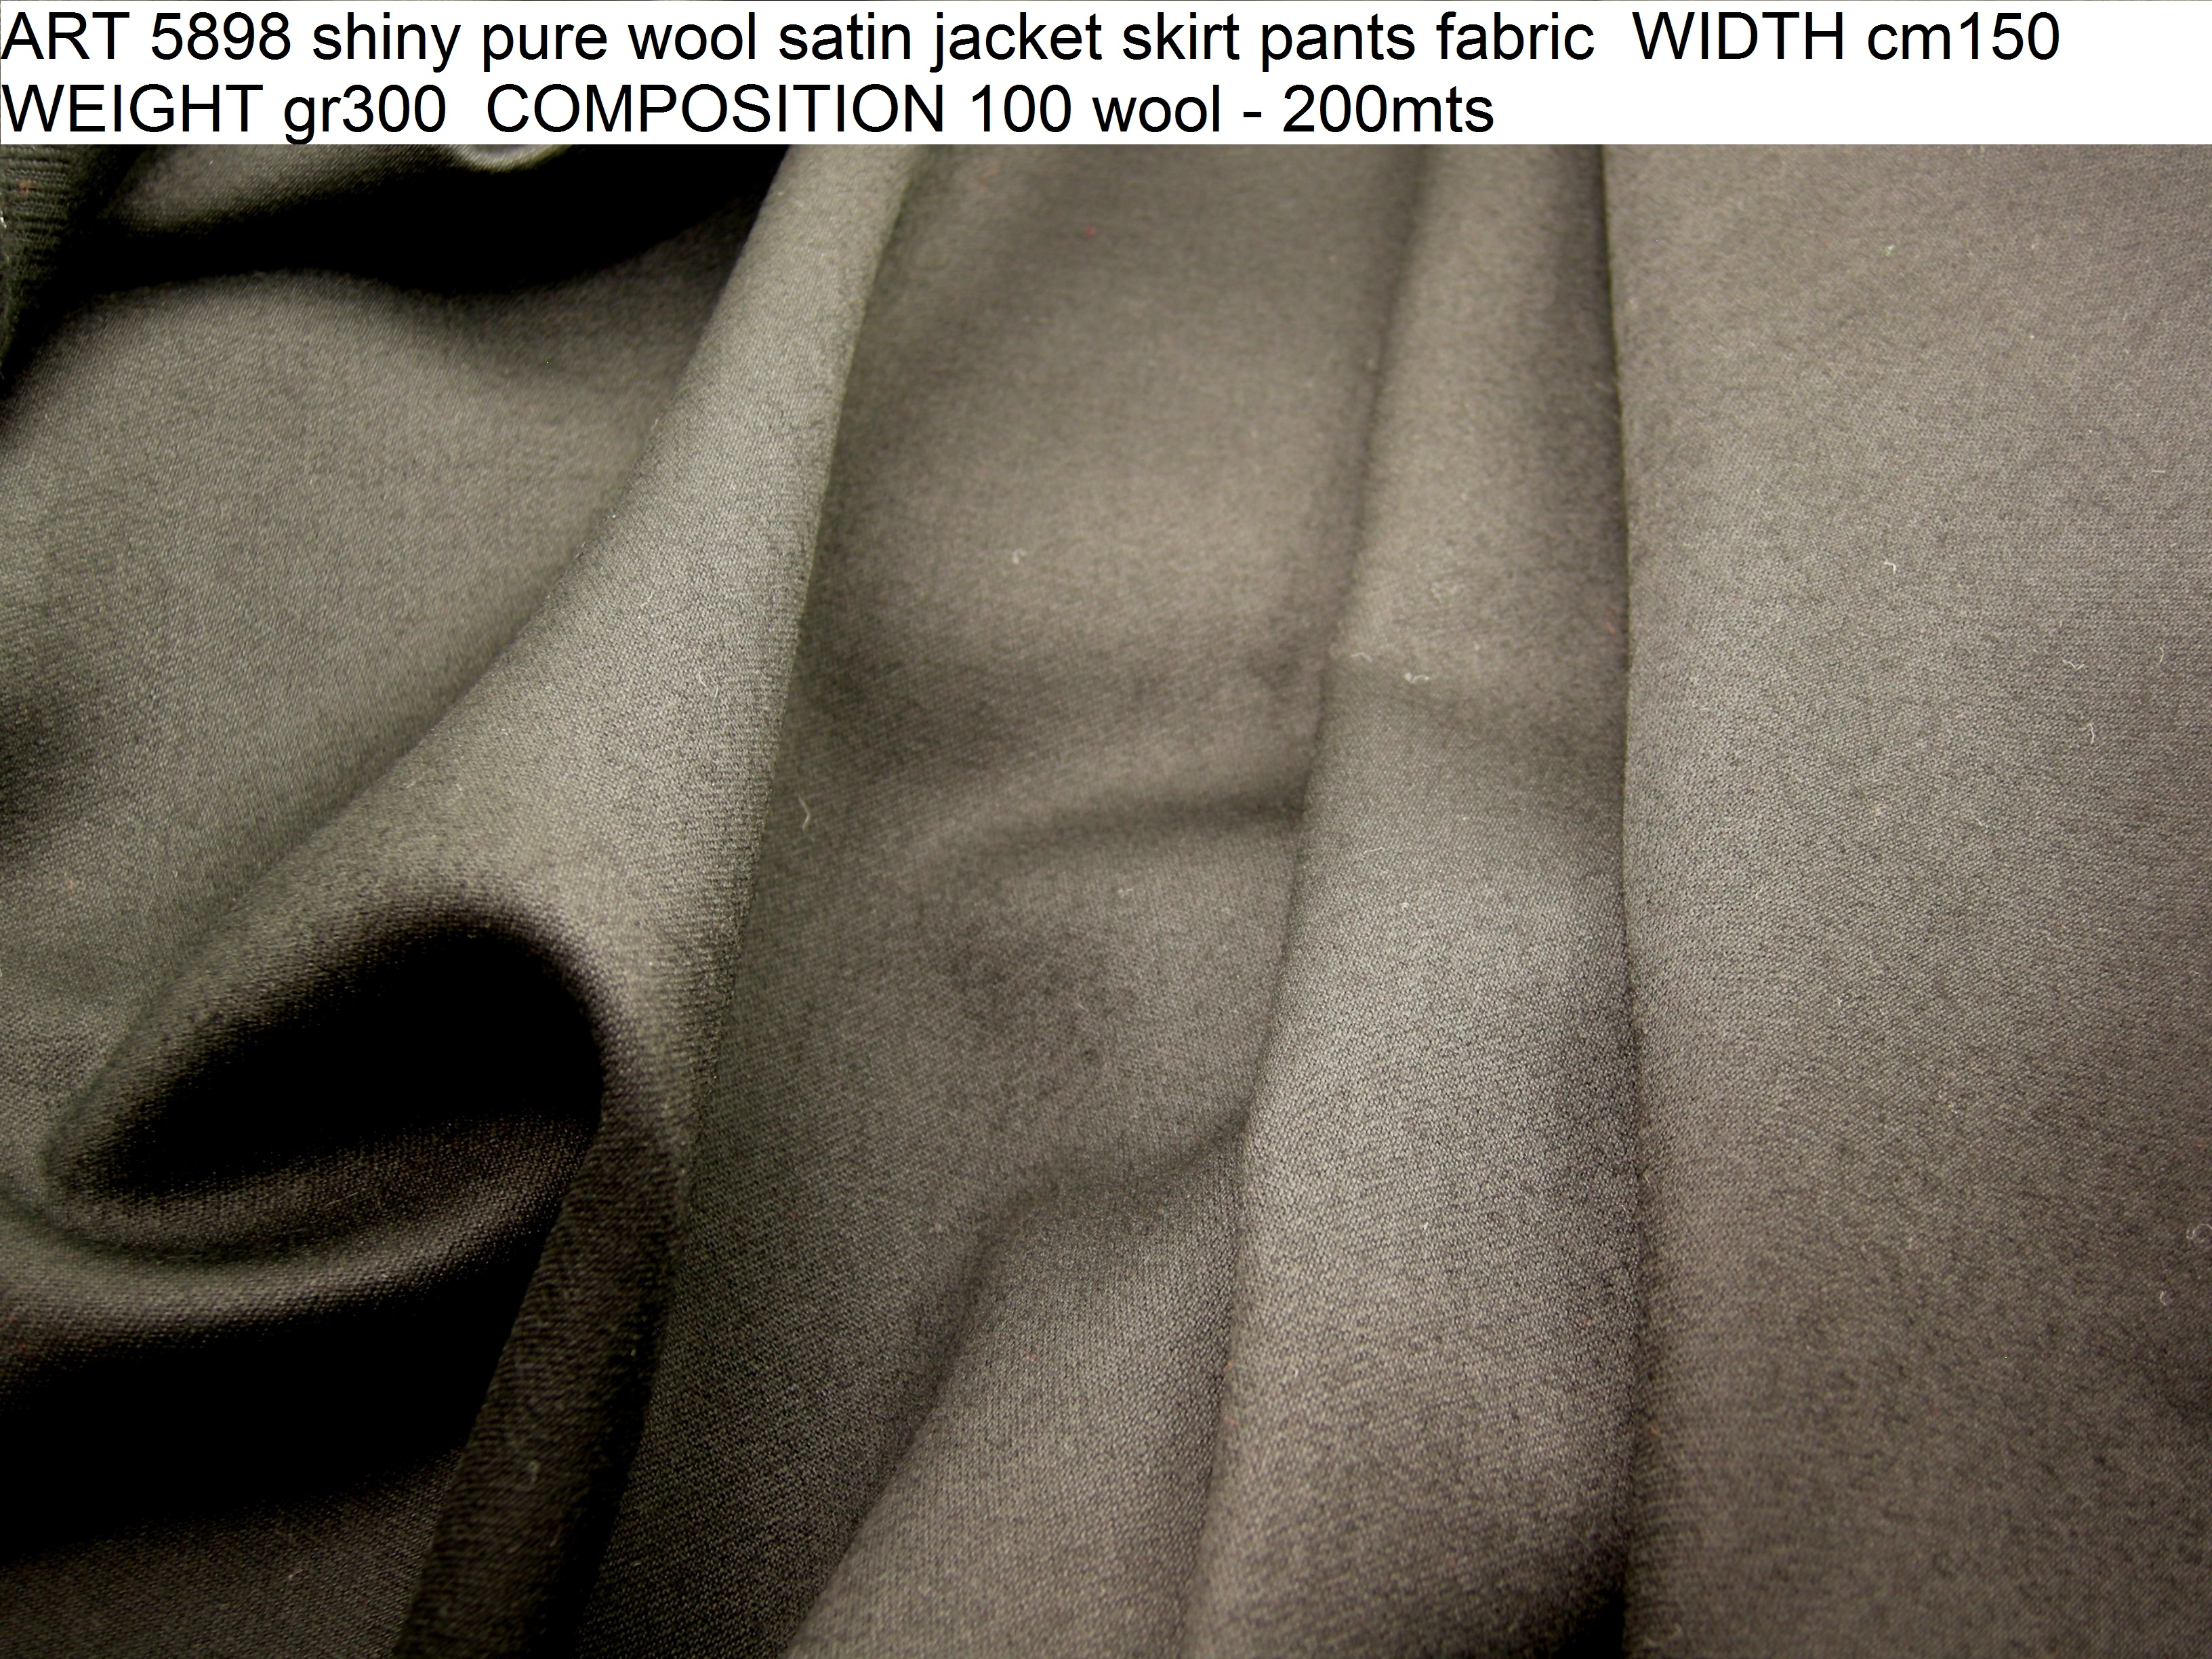 ART 5898 shiny pure wool satin jacket skirt pants fabric WIDTH cm150 WEIGHT gr300 COMPOSITION 100 wool - 200mts